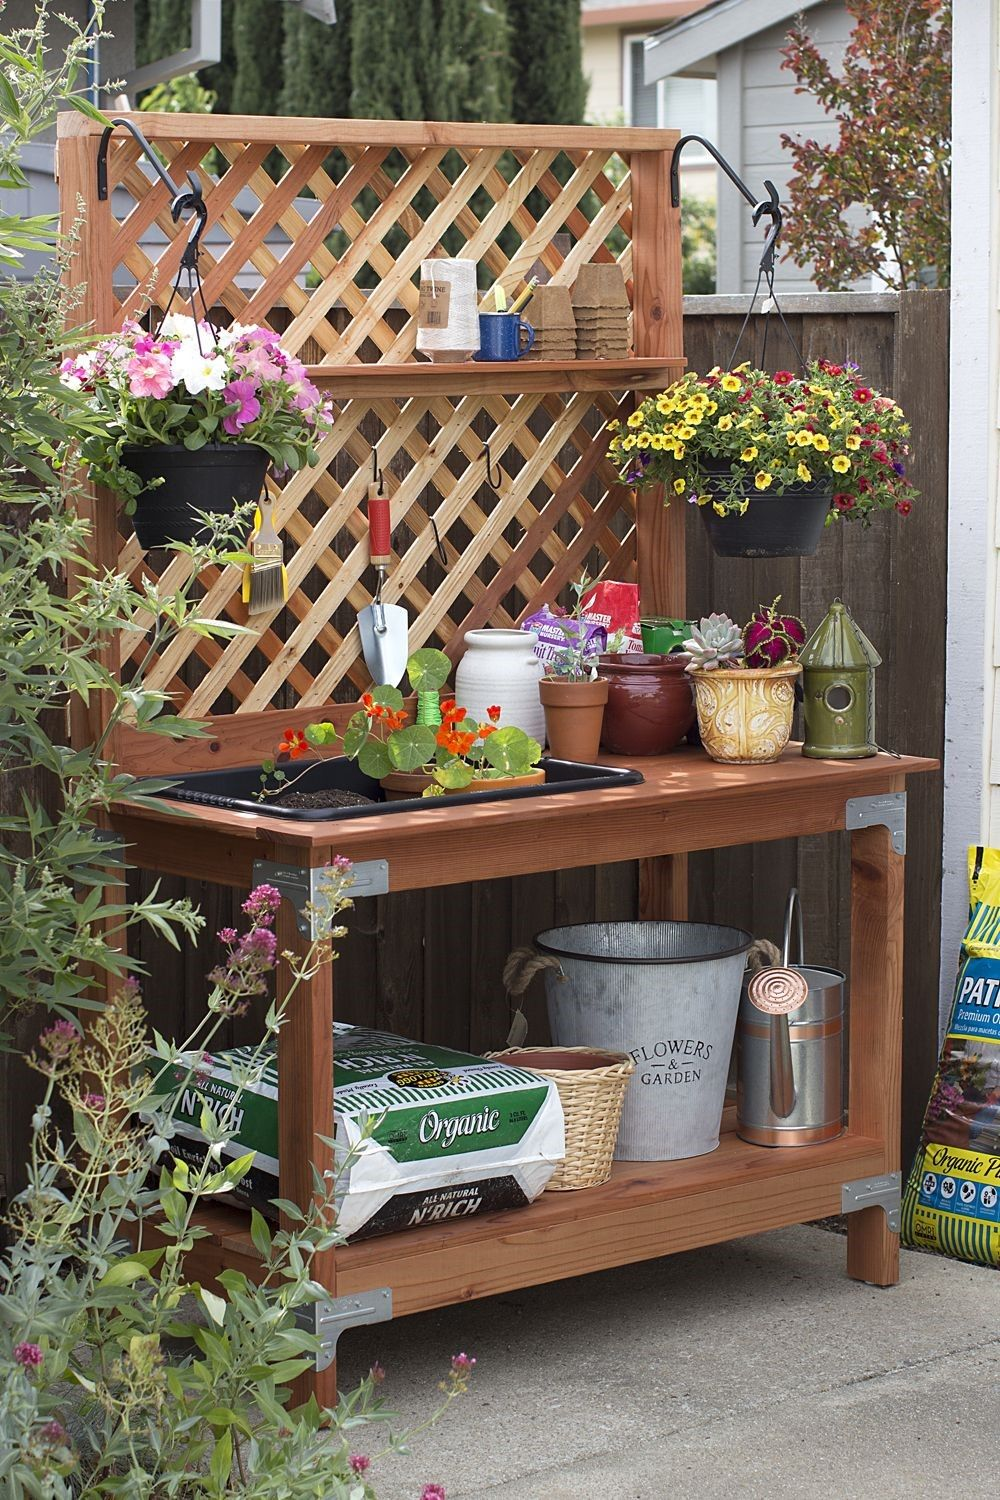 Shed Diy Shed Plans 16 Free Potting Bench Plans To Organized